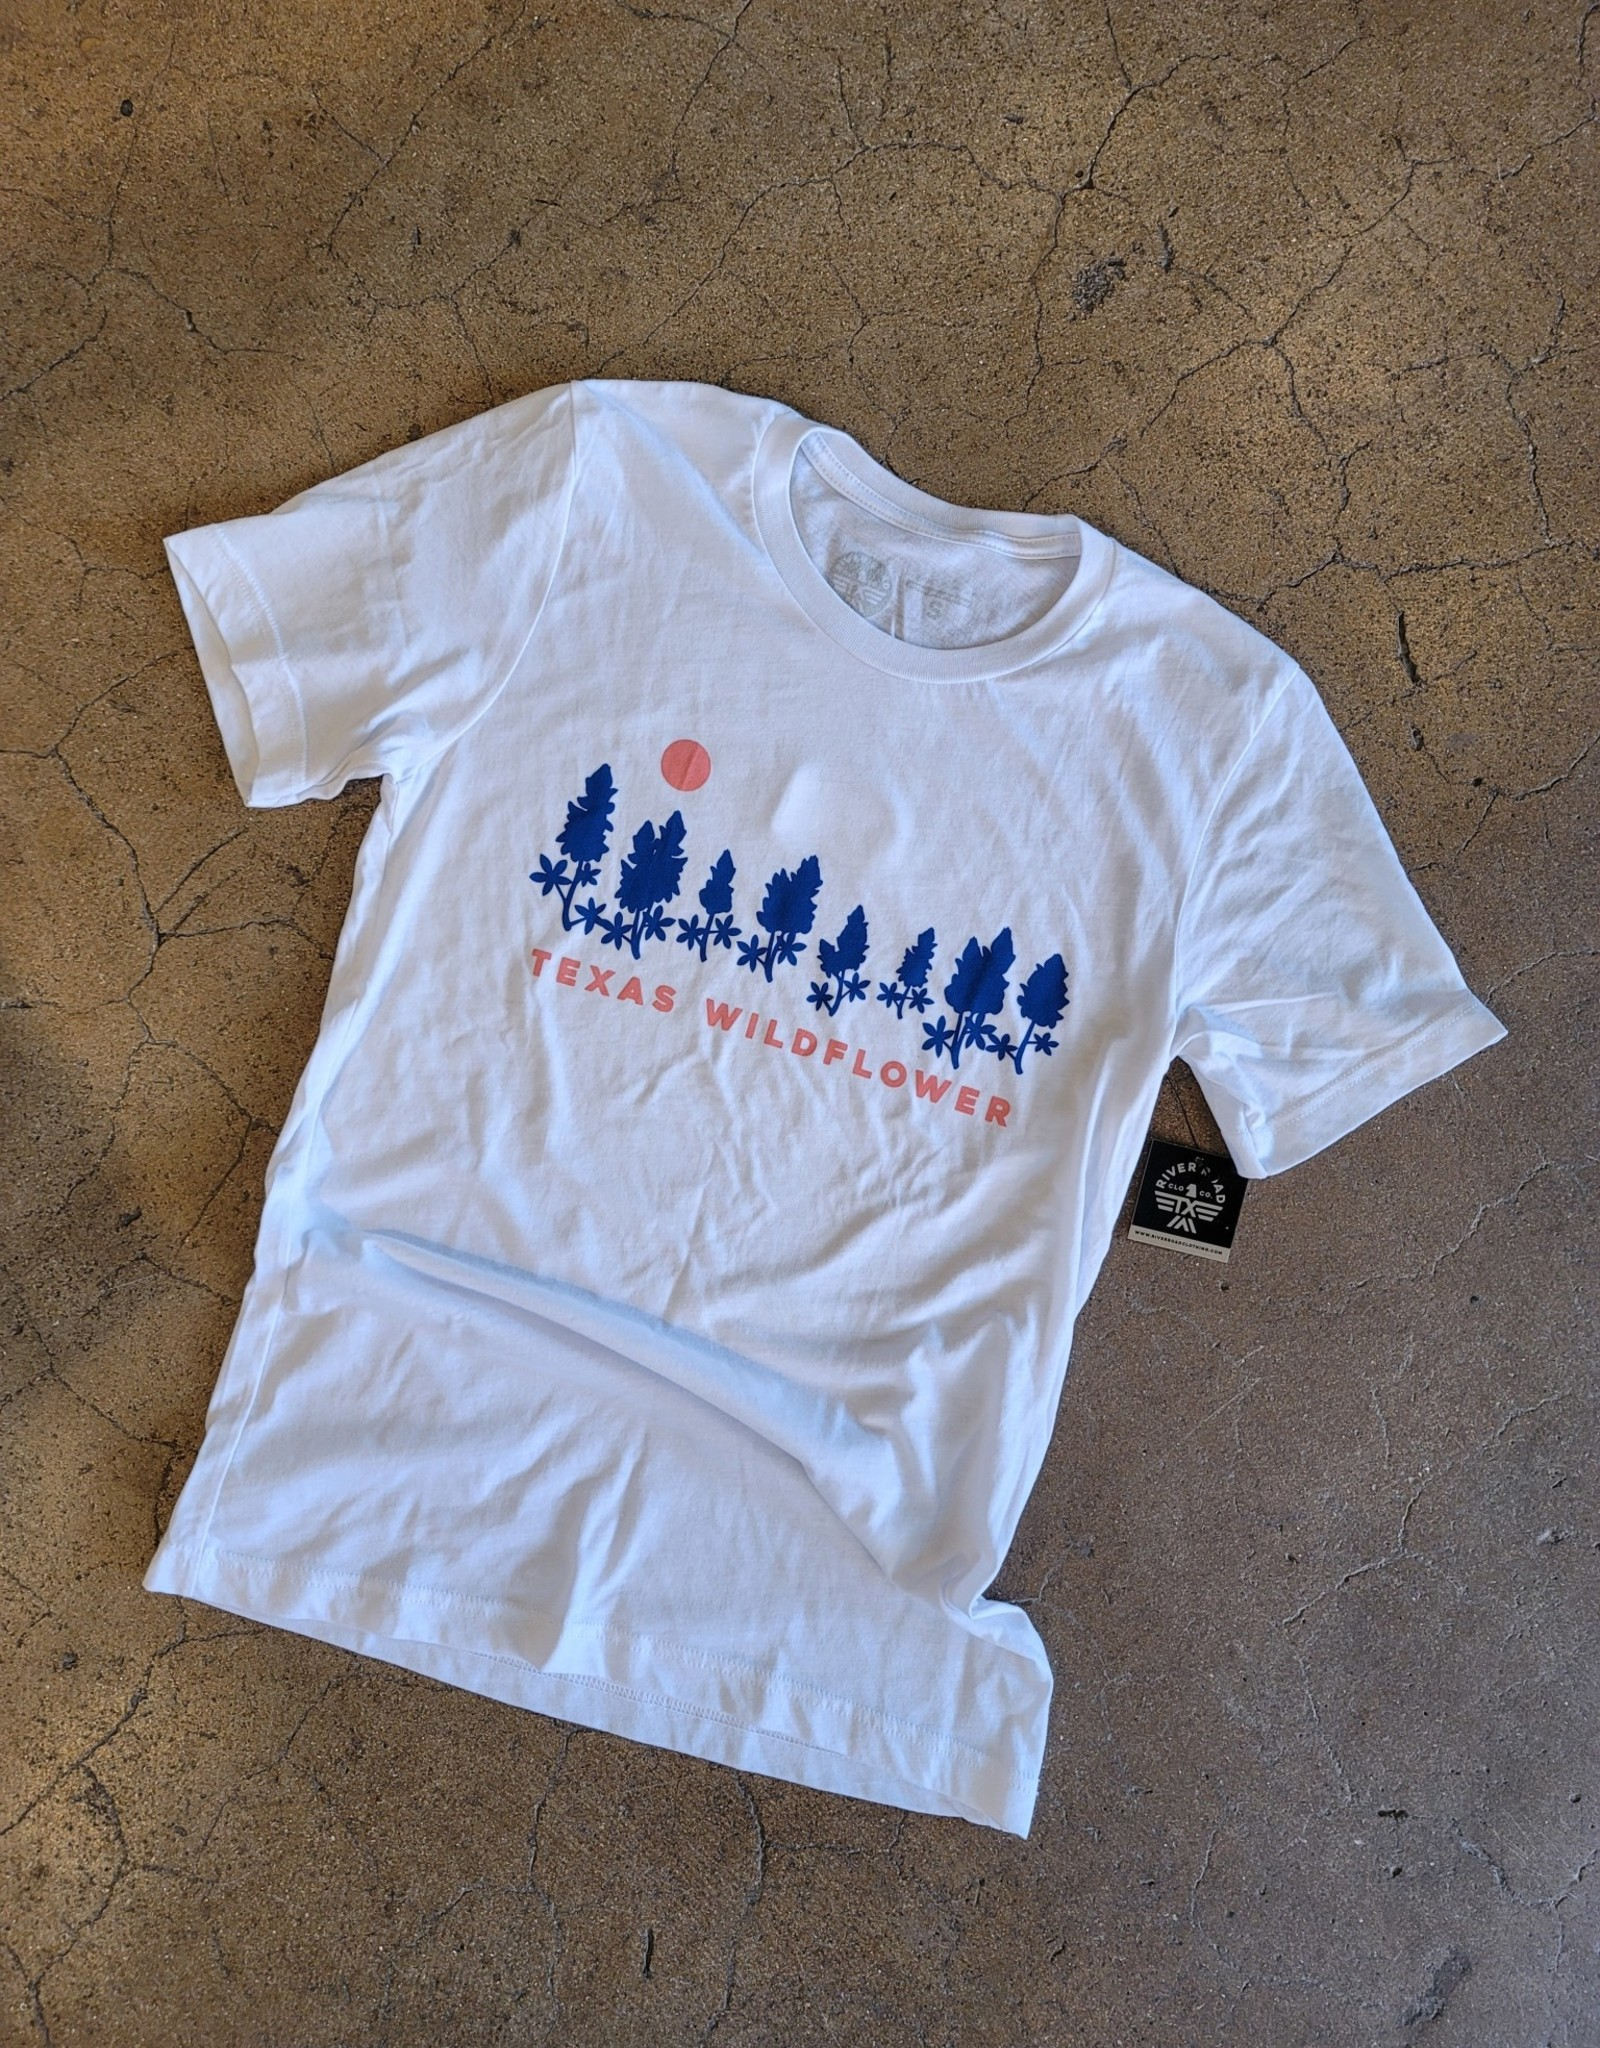 Texas Wildflower Tee by River Road Clothing